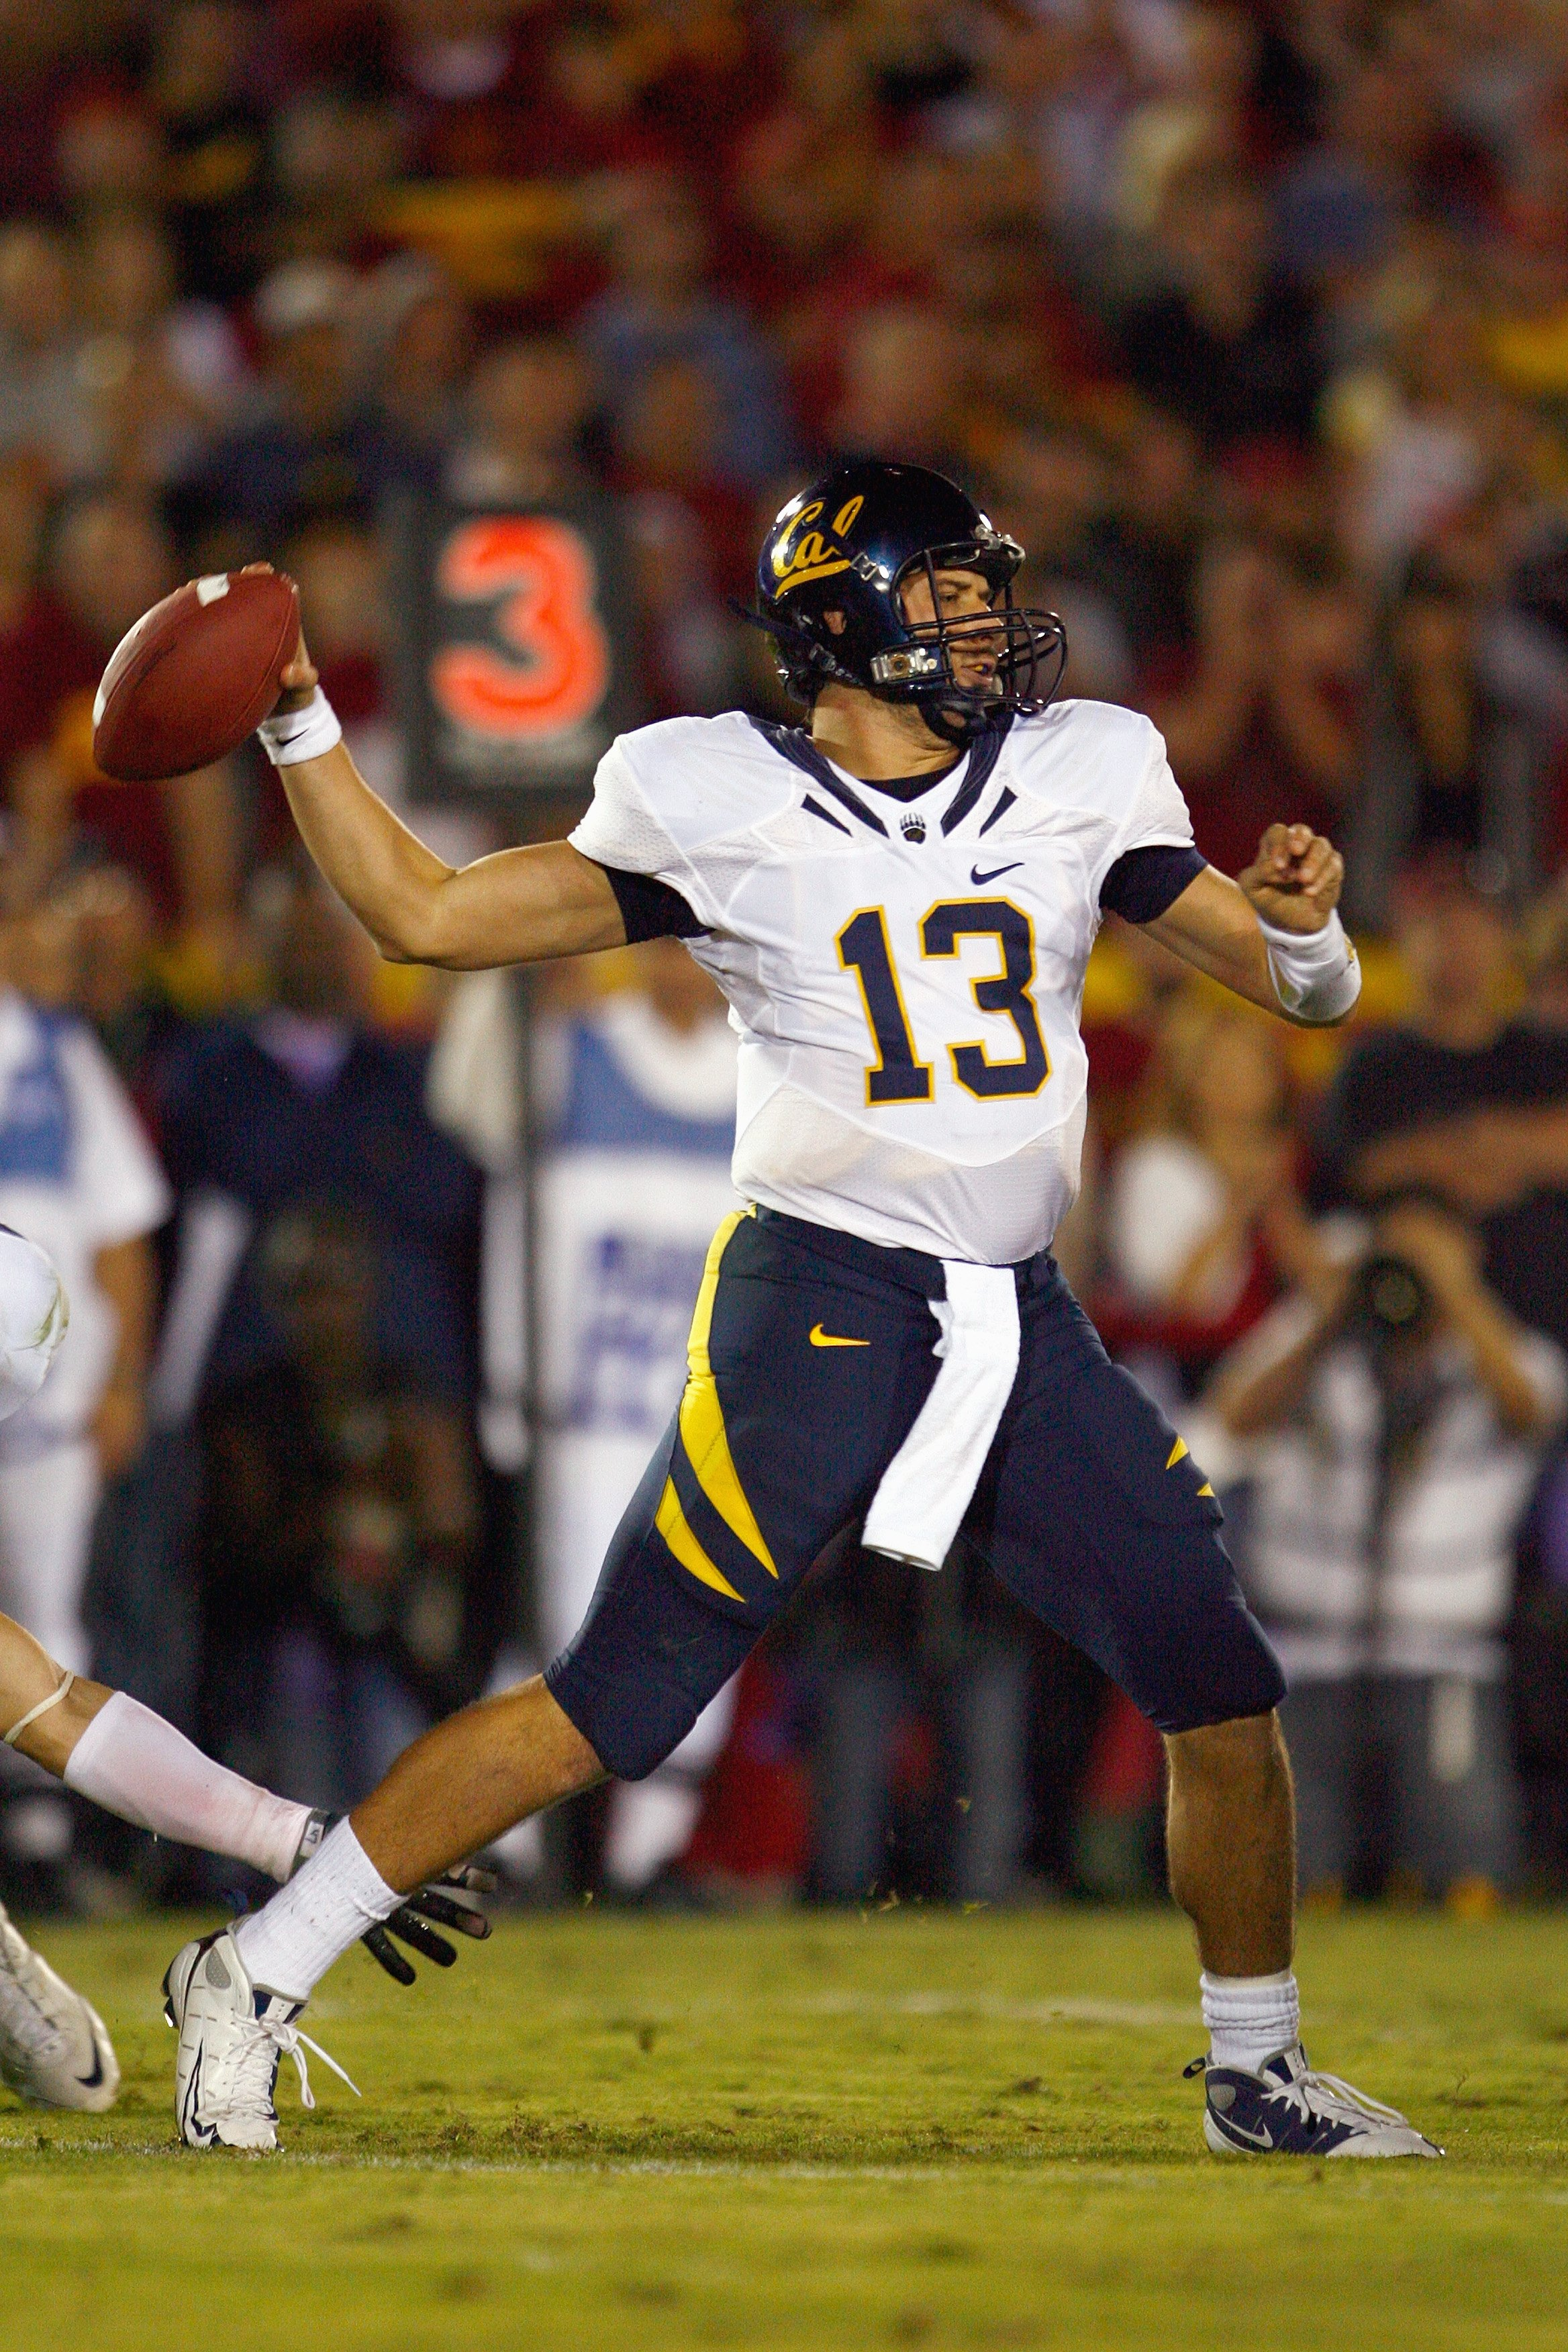 LOS ANGELES - NOVEMBER 8:  Quarterback Kevin Riley #13 of the Cal Golden Bears passes the ball during the game against the USC Trojans at the Memorial Coliseum on November 8, 2008 in Los Angeles, California. (Photo by: Jeff Gross/Getty Images)